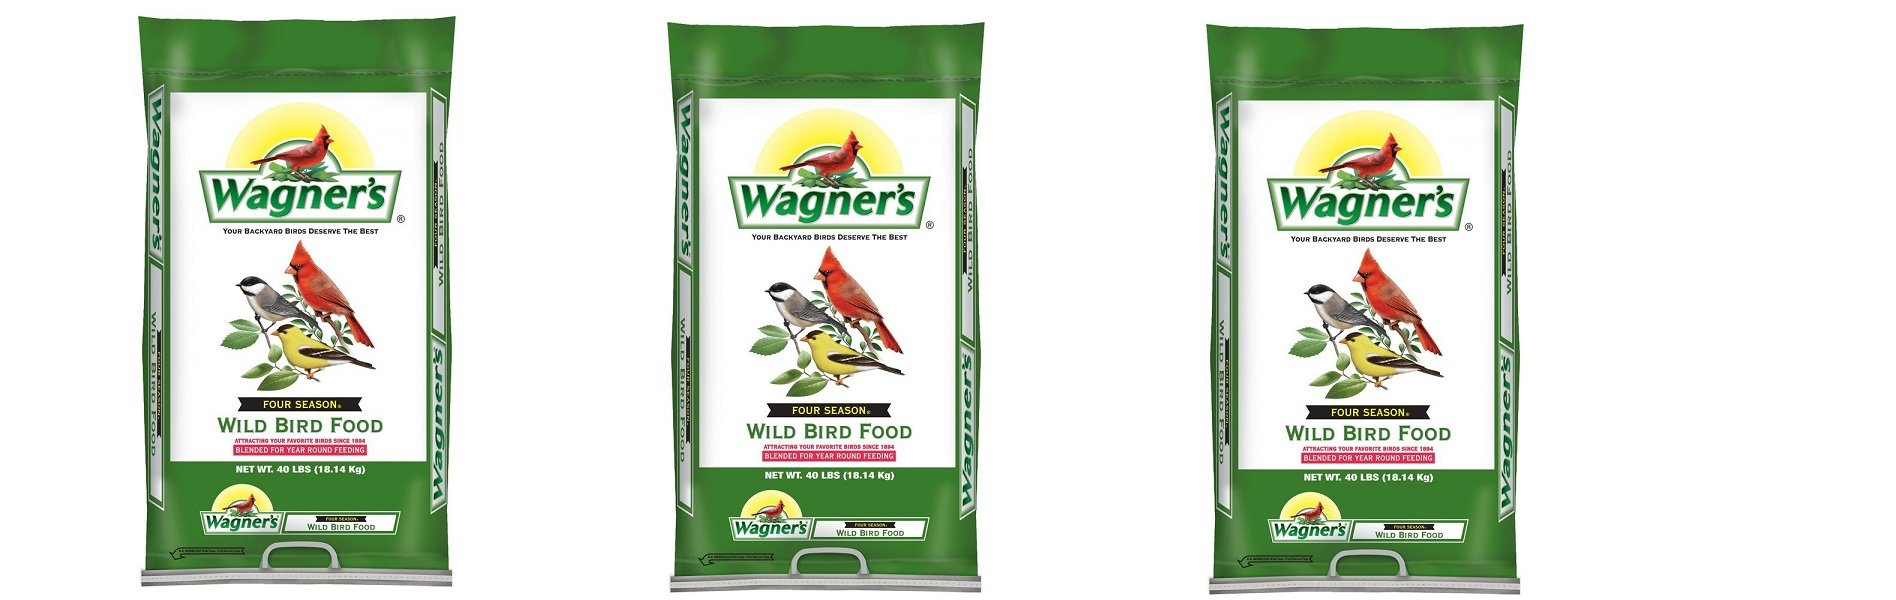 Wagner's 13013 Four Season Wild Bird Food, 40-Pound Bag (3,BAGS) by Wagner's